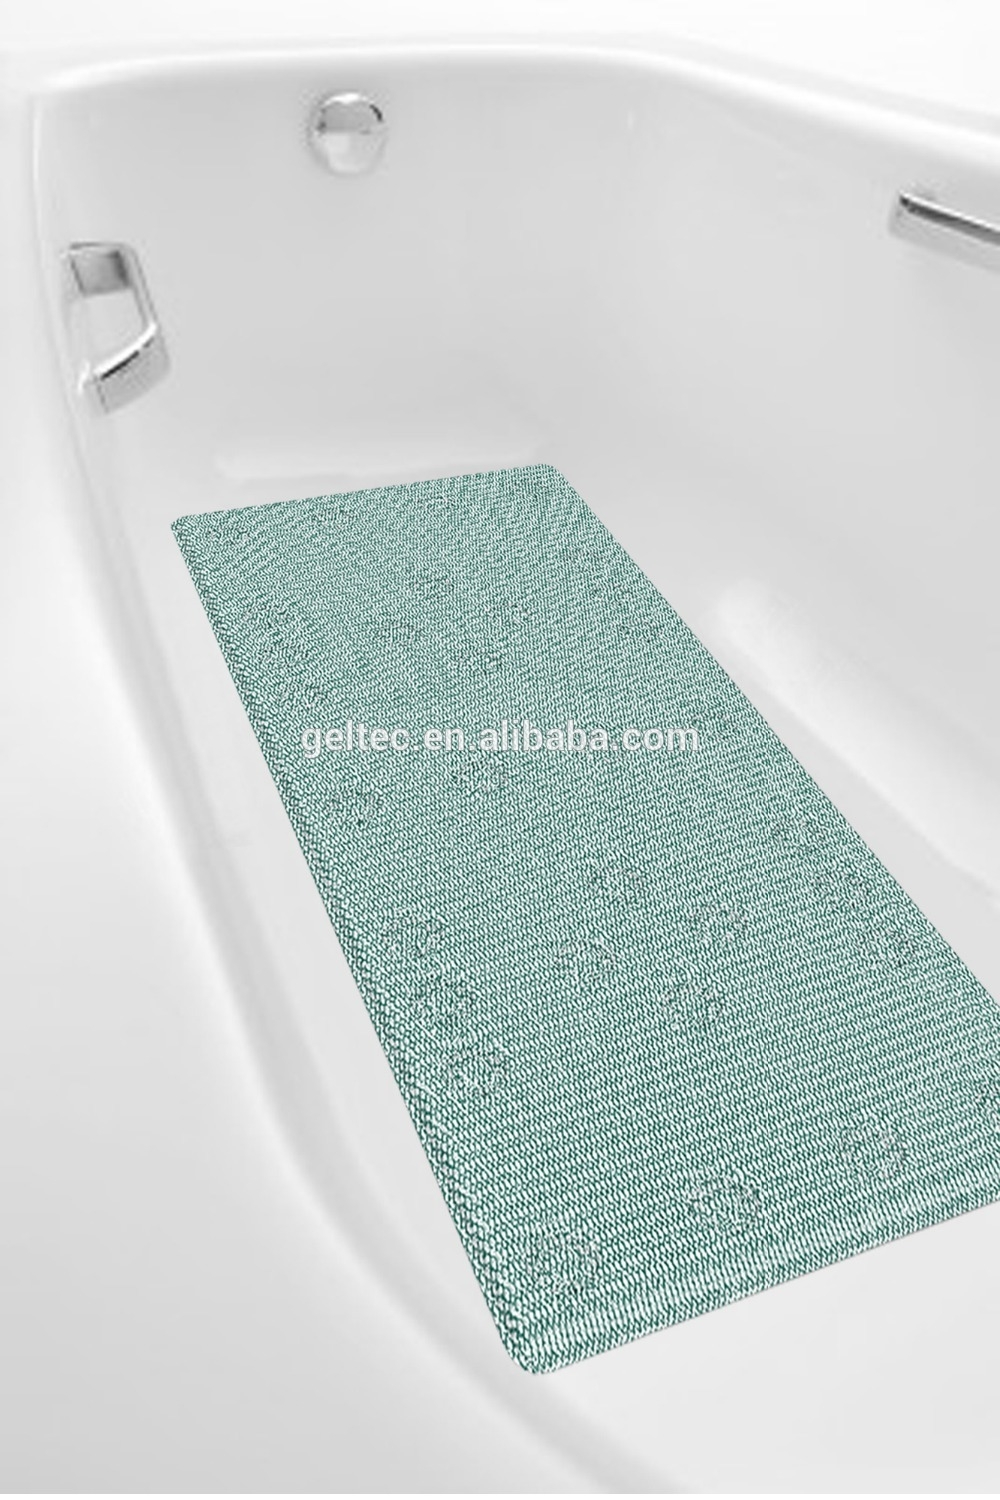 Round Bathtub Mat